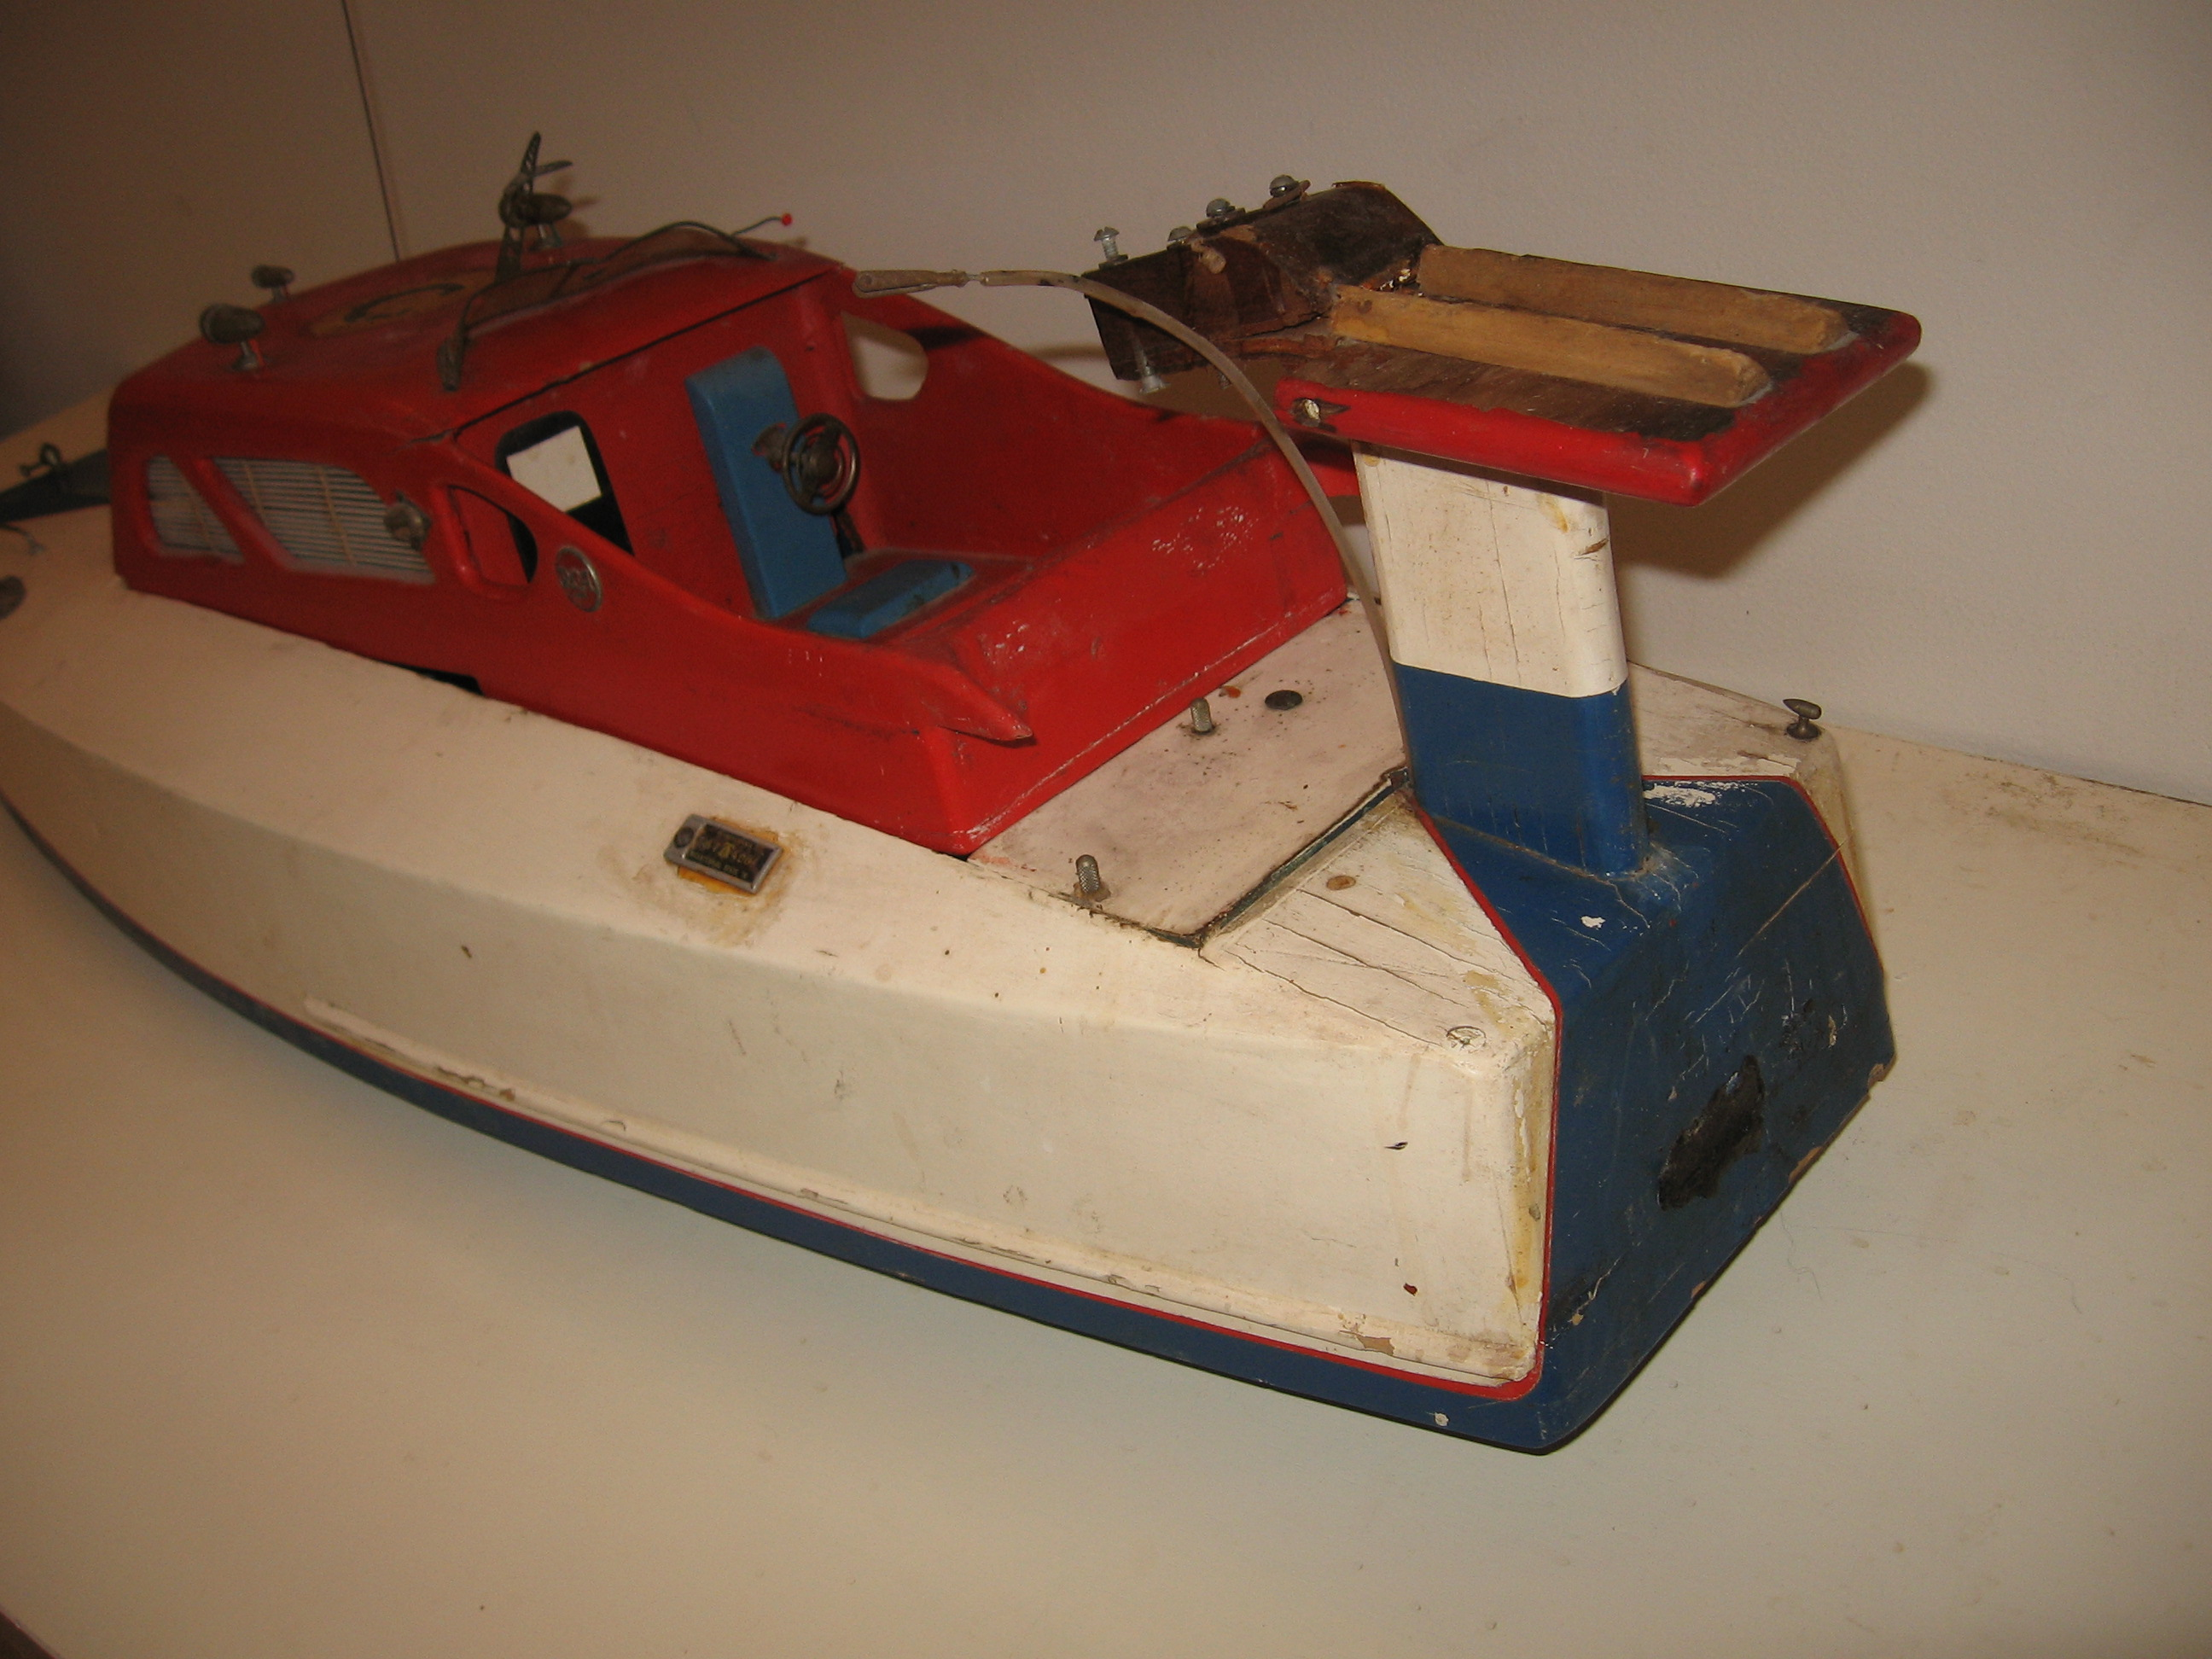 Click image for larger version  Name:RC boats 006.JPG Views:62 Size:1.01 MB ID:1977723